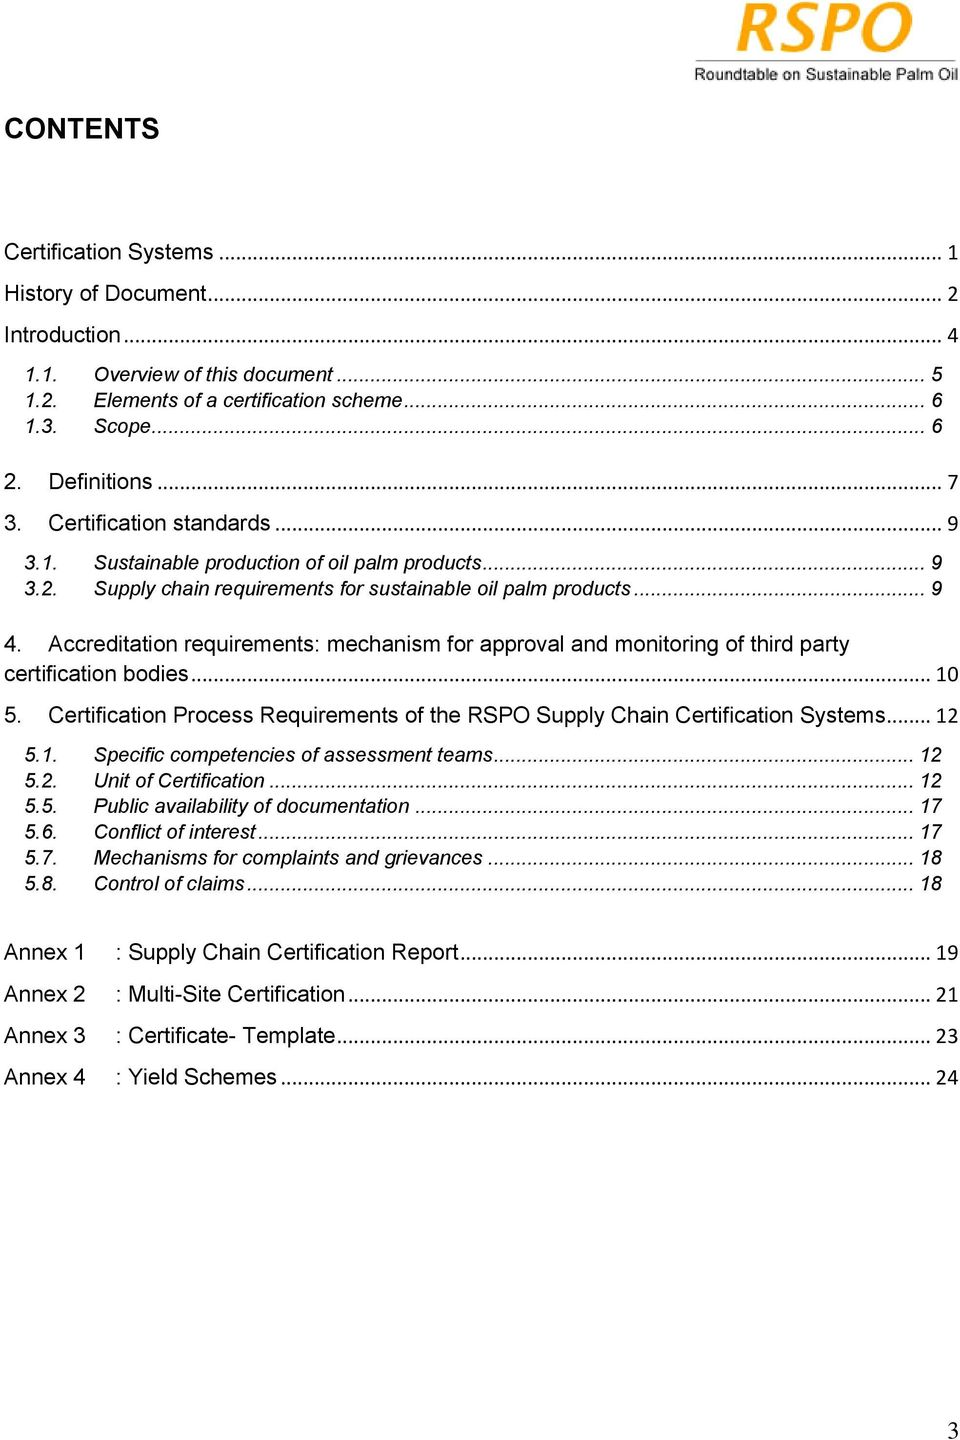 Accreditation requirements: mechanism for approval and monitoring of third party certification bodies... 10 5. Certification Process Requirements of the RSPO Supply Chain Certification Systems... 12 5.